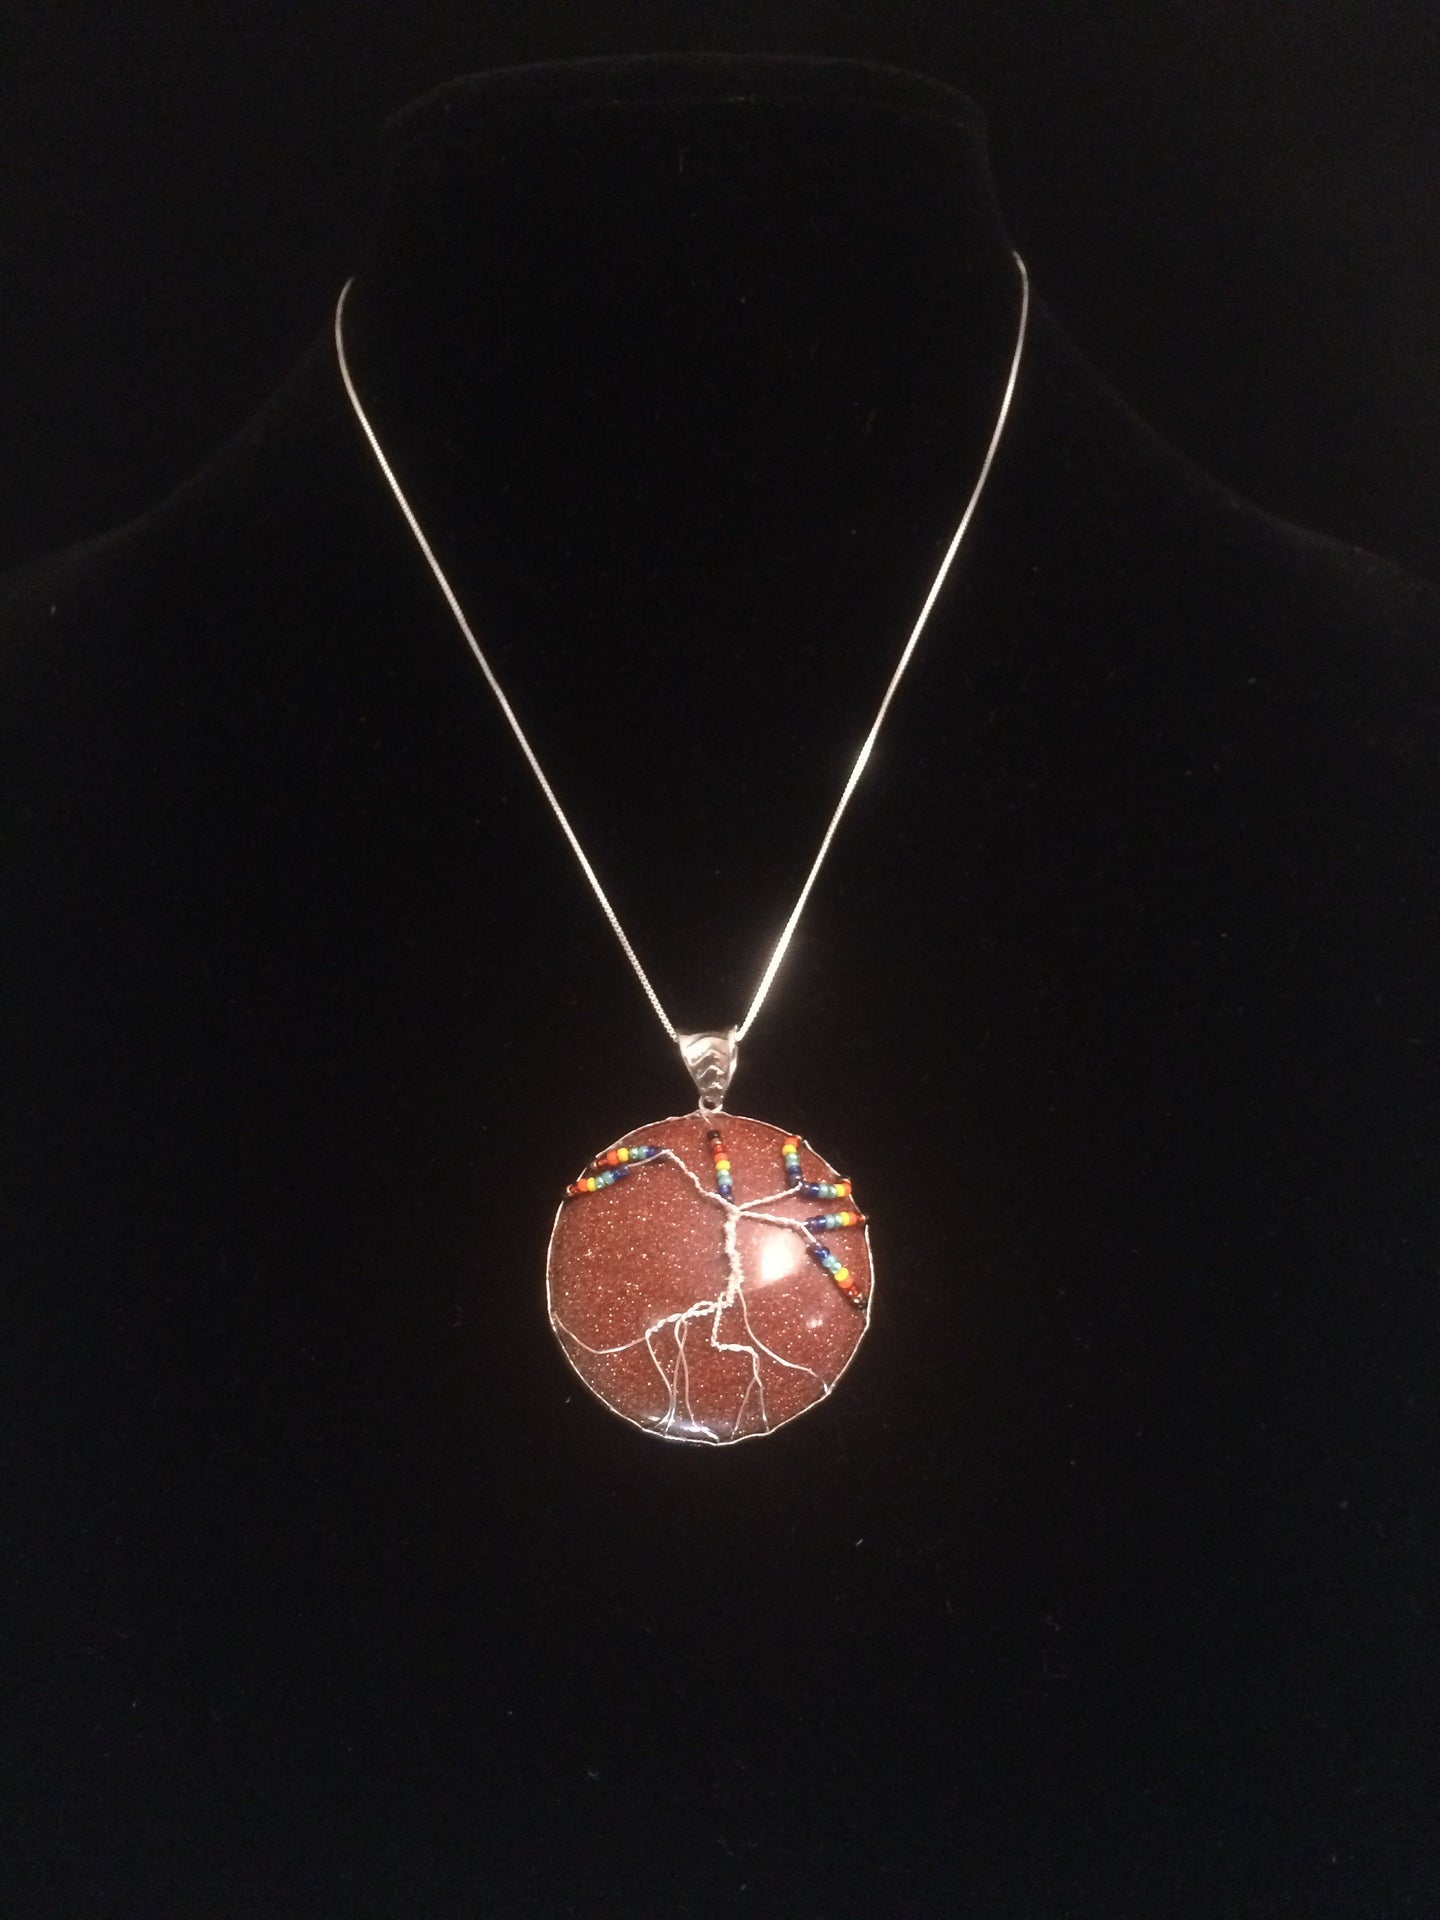 This tree of life uses the inclusive rainbow as the color theme made with glass seed beads on fine silver wire on a silver chain. The background is a 30mm cabochon of lab created sunstone in gold.